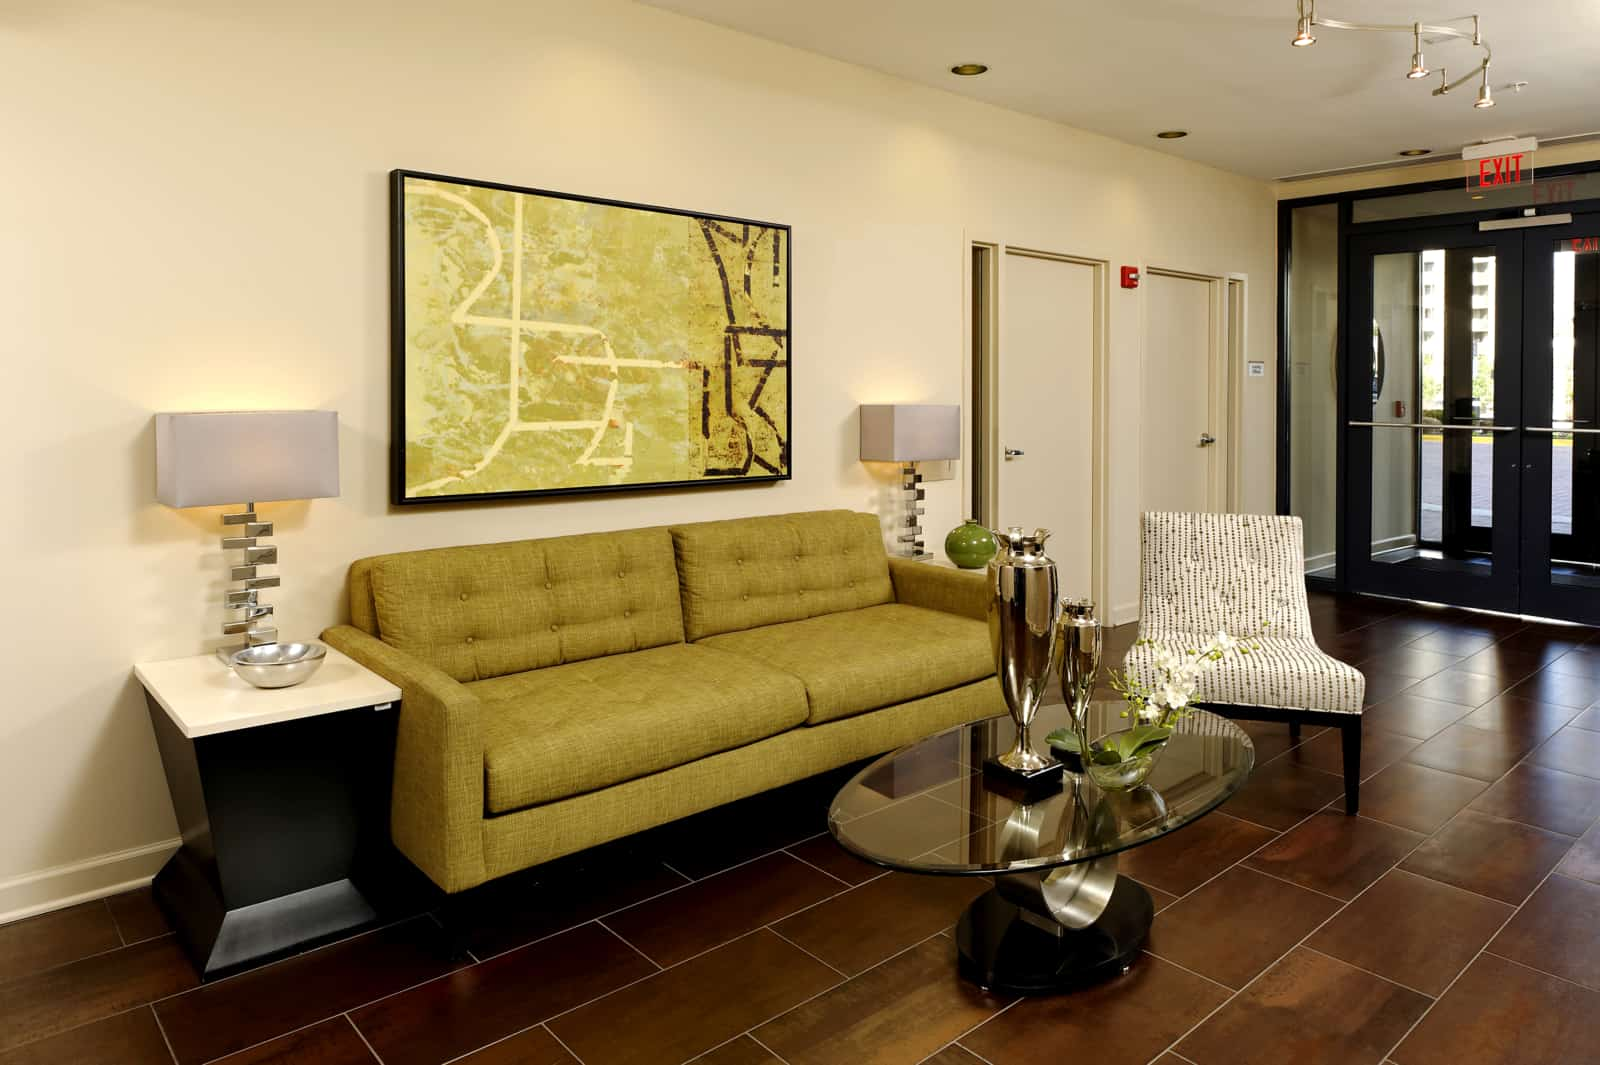 Interior of the lobby with couch, chair, coffee table and side tables.